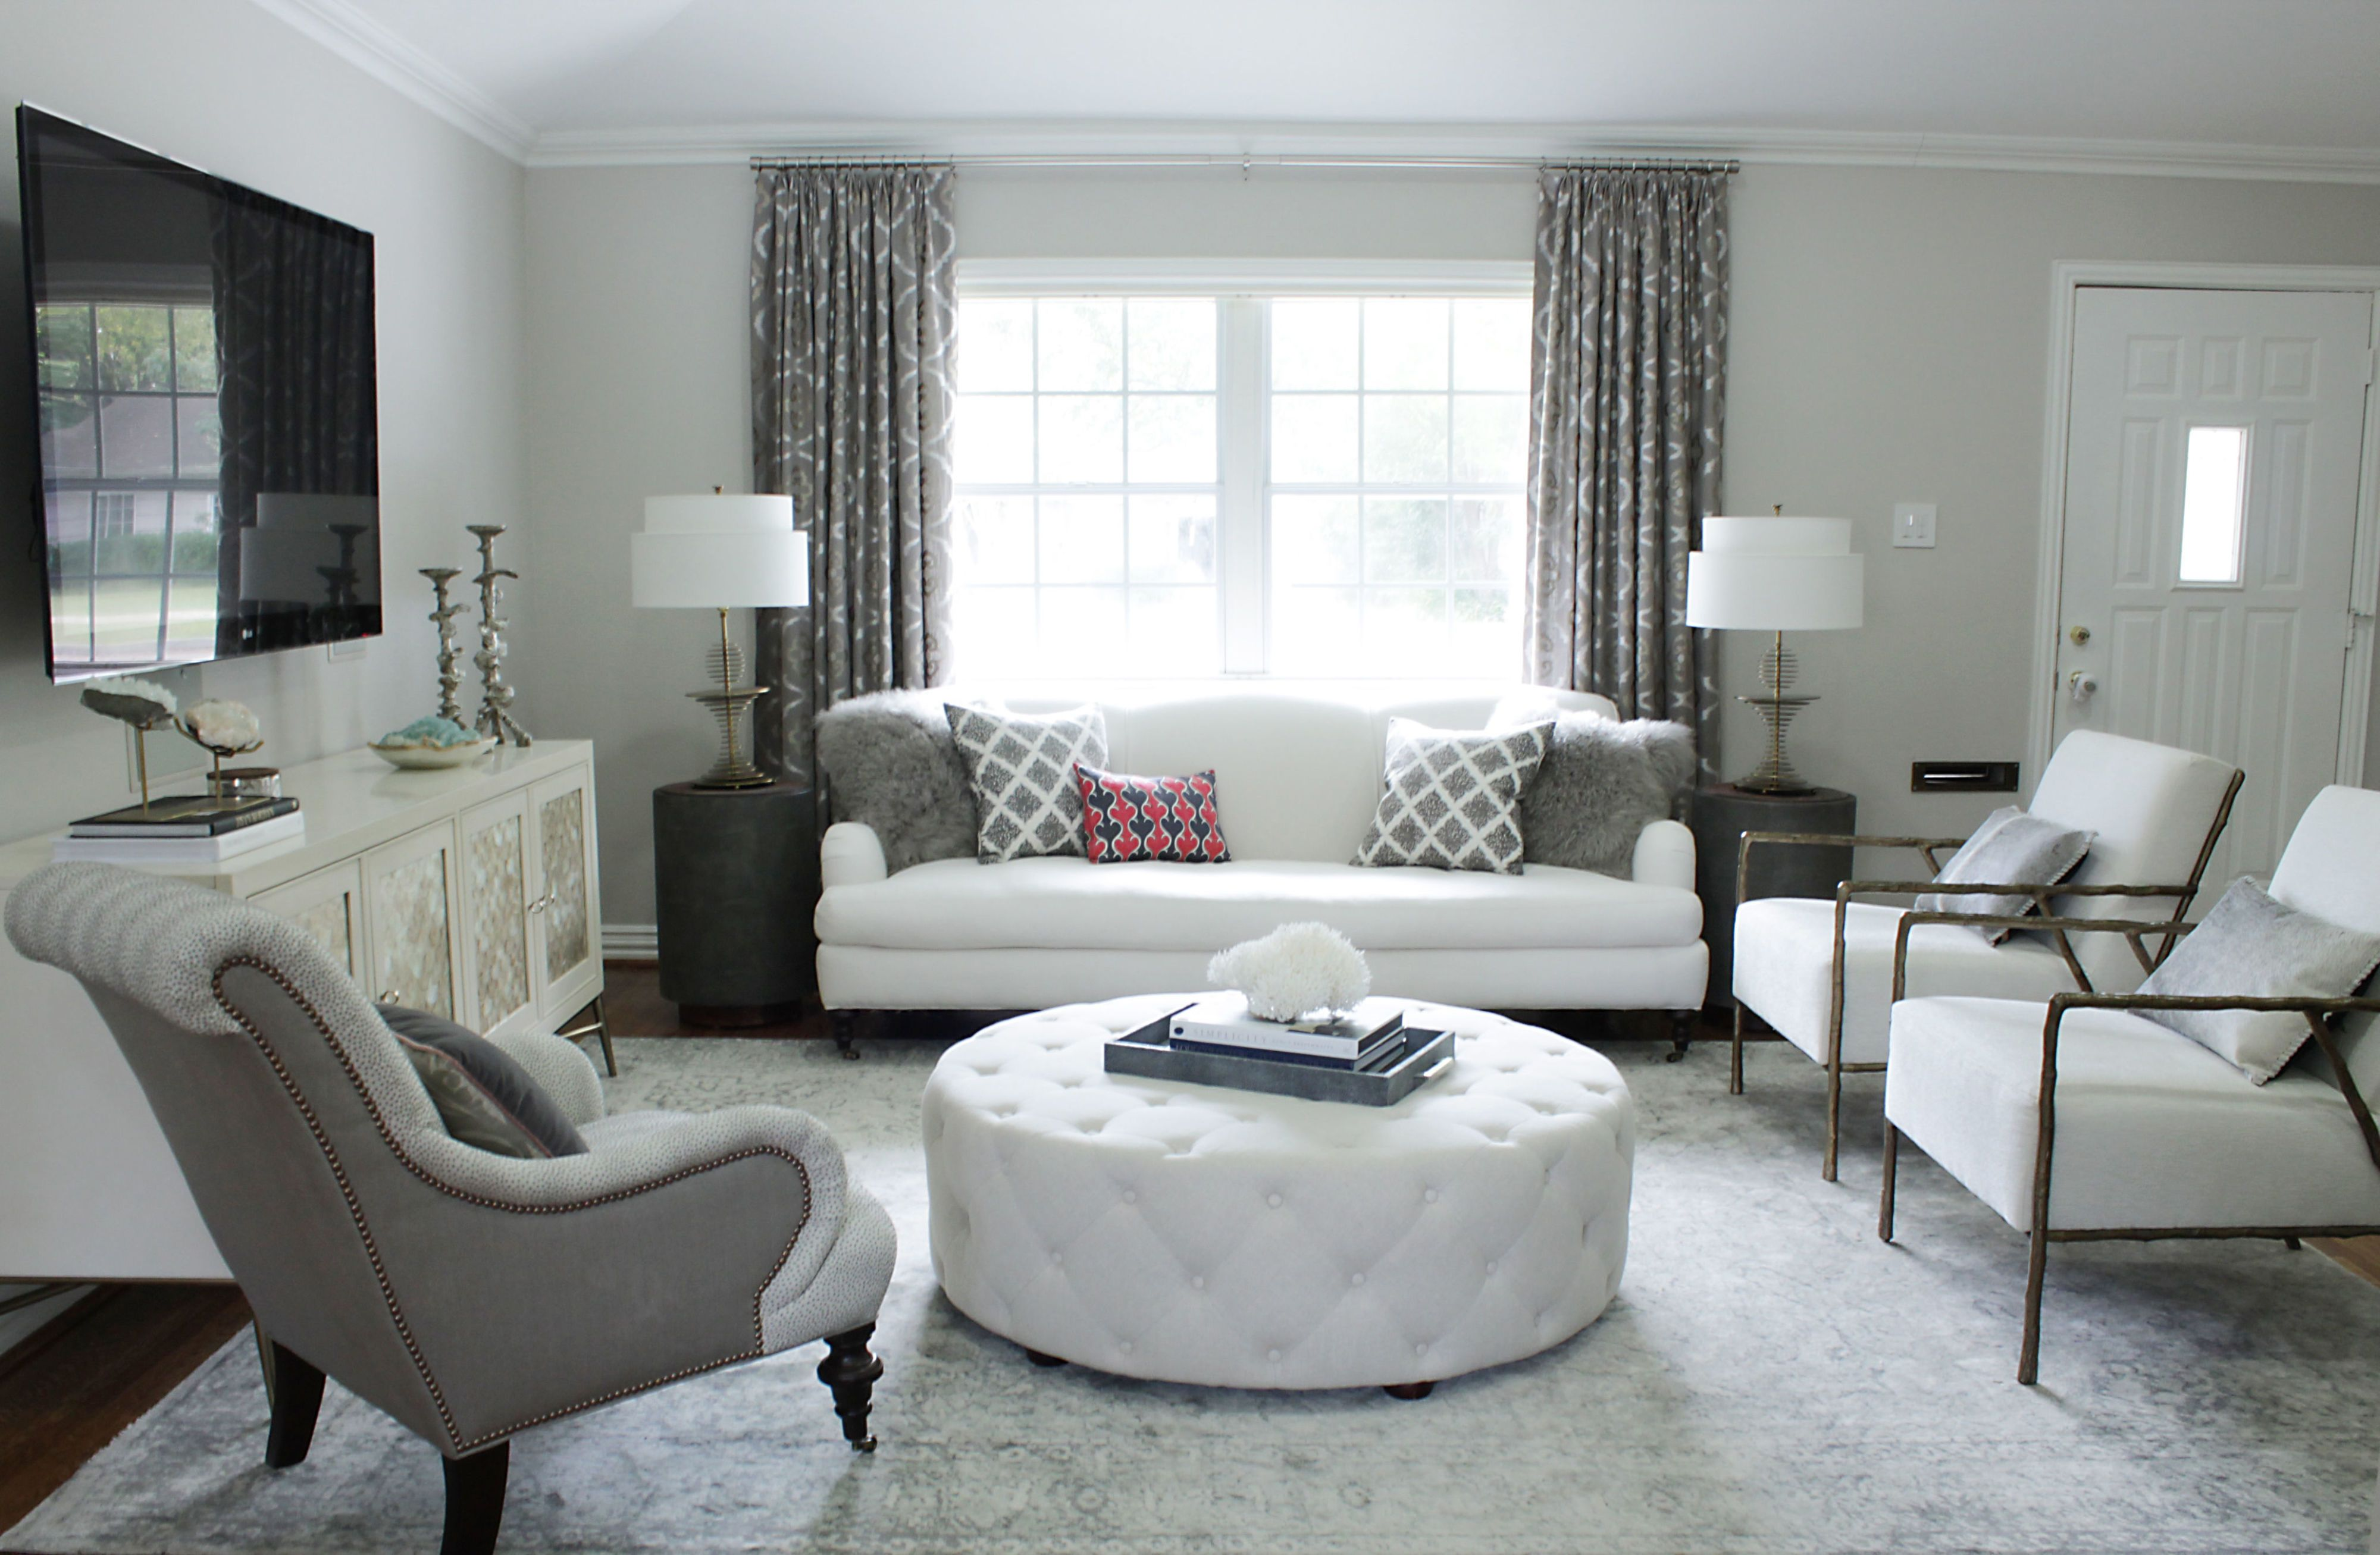 Courtesy Of High Fashion Home. Interested In Updating Your Living Room ... Nice Look